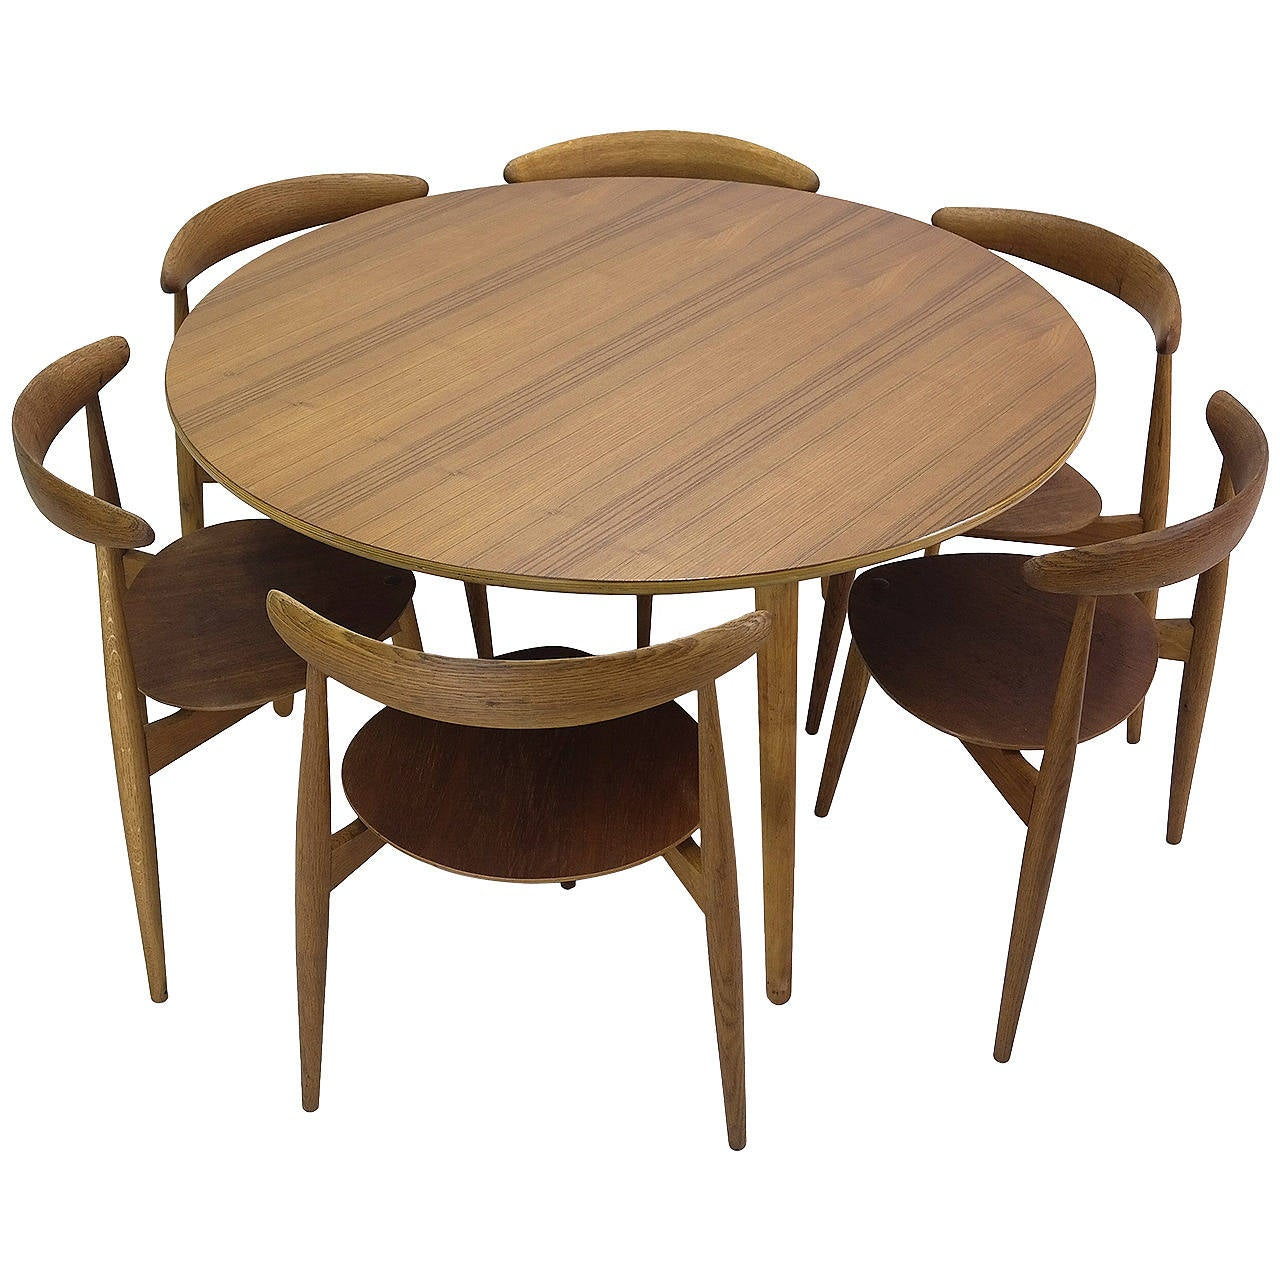 Hans Wegner Round Dining Table And Matching Heart Shaped Chairs For Fritz Hansen